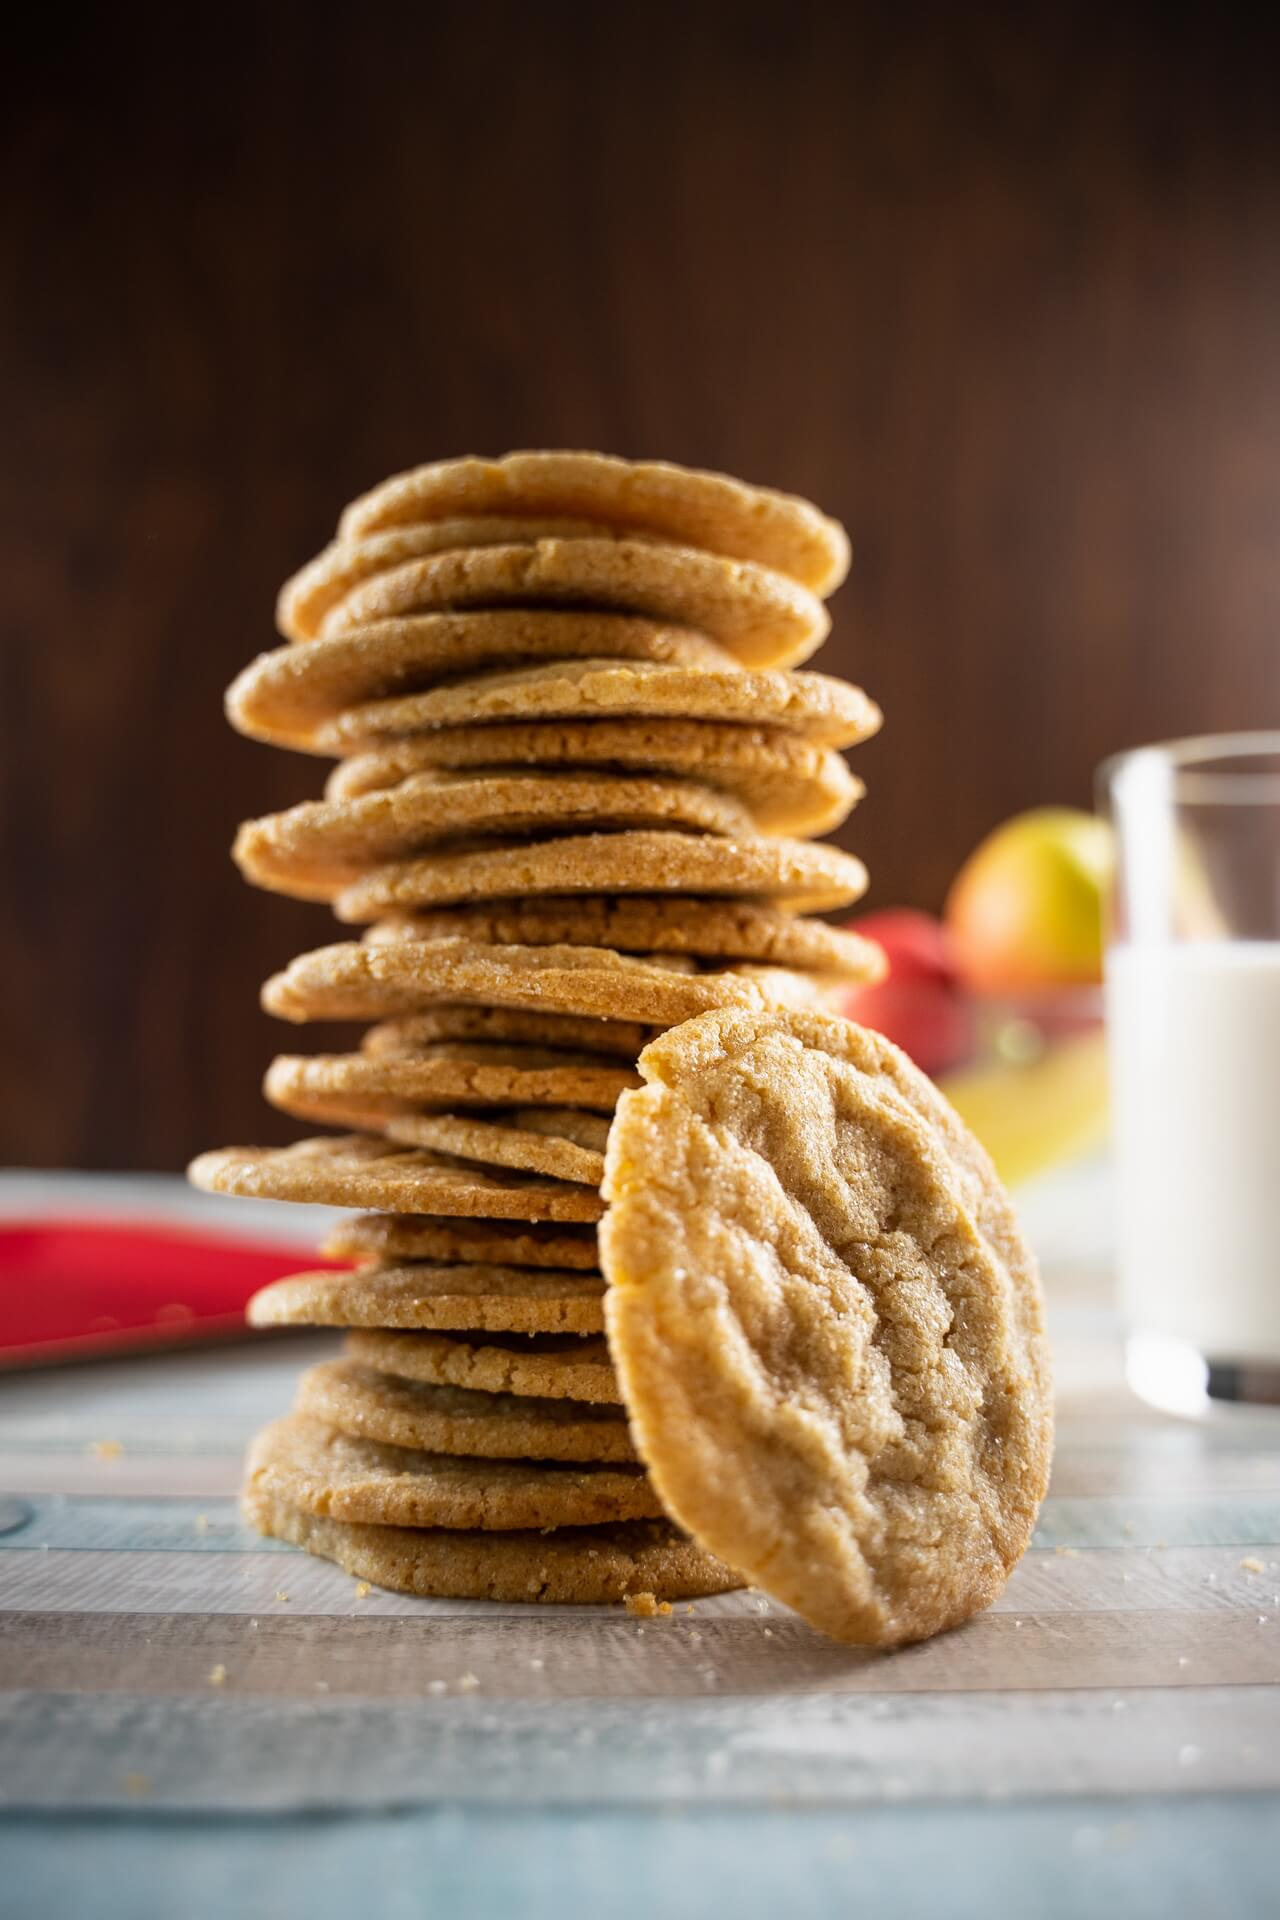 Chewy Brown Sugar Cookies With Cinnamon Tower With Single Cookie Vertical